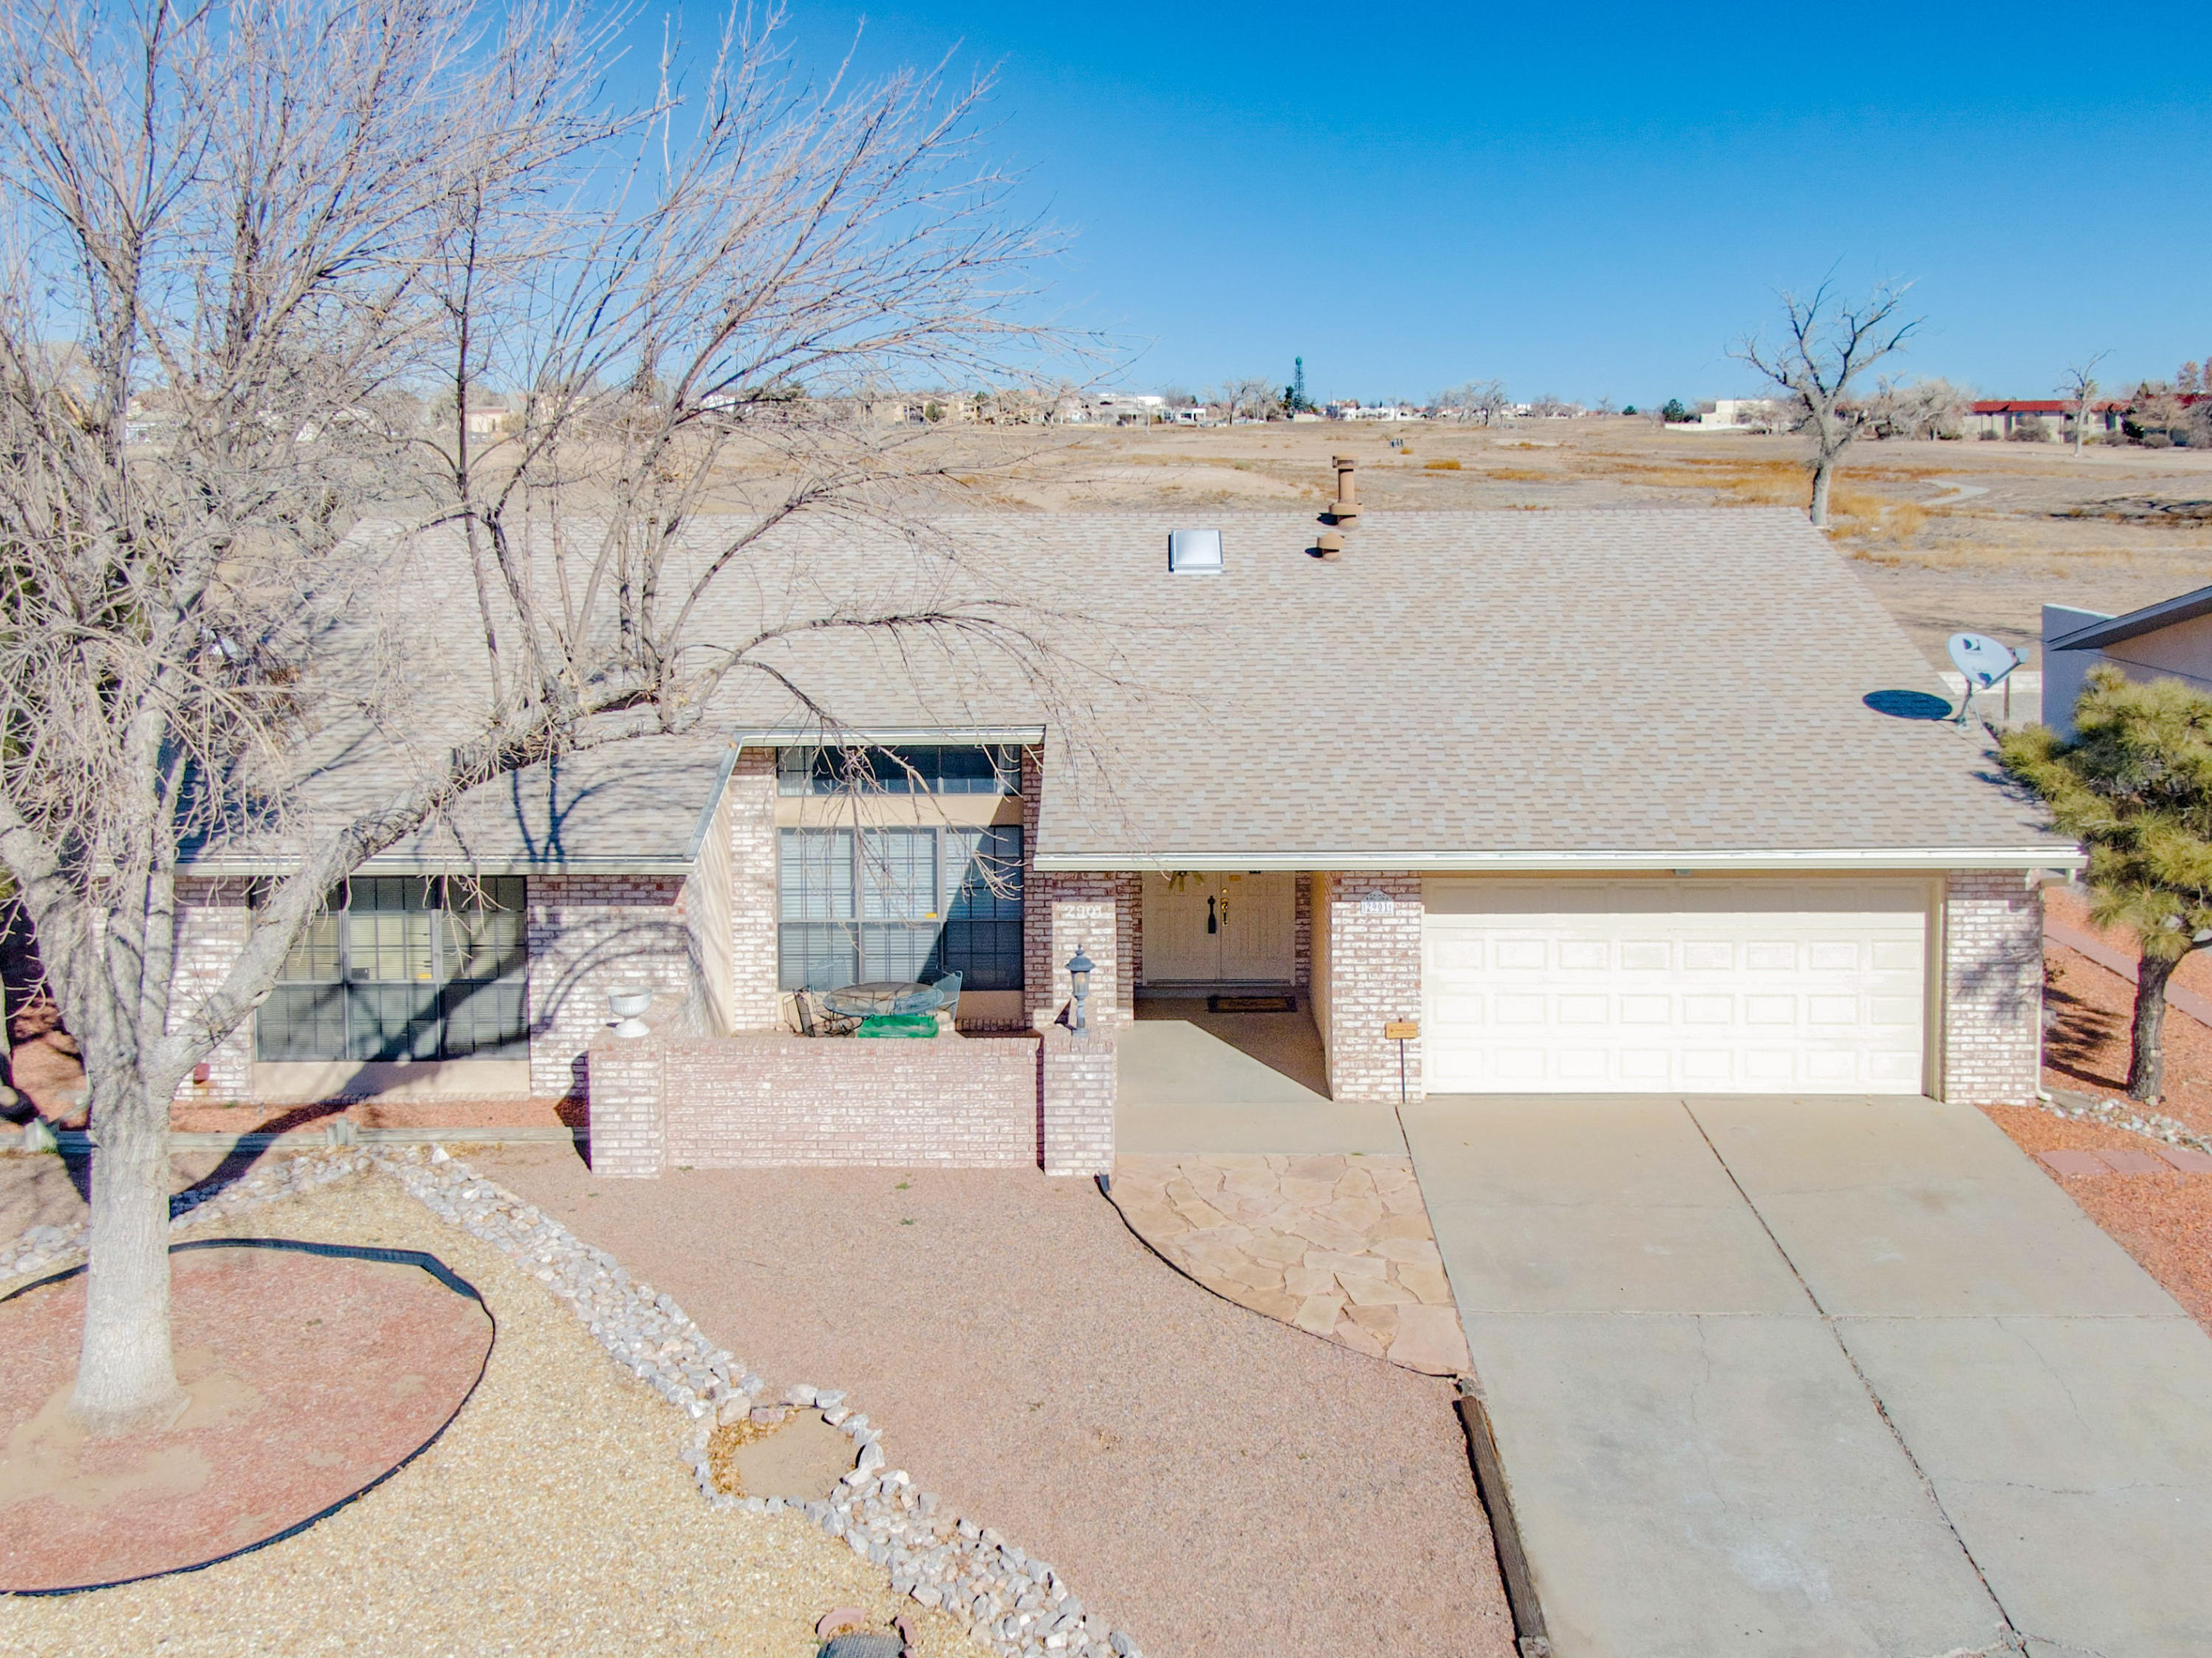 **COVID Safe Open House 01/17/2021 from 12:00 P.M. TO 3:00 pm** This Great Home is centrally located and close to everything, shopping, hospitals, theatre, etc. Front living room has vaulted celling with exposed beams. Second living has a gas Kiva fireplace. Nice kitchen with stainless steel wall oven and microwave. Bay Window In Dining Room has views of the backyard. Good sized Laundry Room. Amazing Owners Suite with electric fireplace. Owners bathroom has jetted tub, long two sink vanity and walk in shower. Huge covered patio with a brick flooring. Replaced Hot Water Heater 08/18, Furnace 08/17, Refrigerated Air 05/18 and Roof 07/18,  Call listing agent or your favorite agent to schedule an appointment.